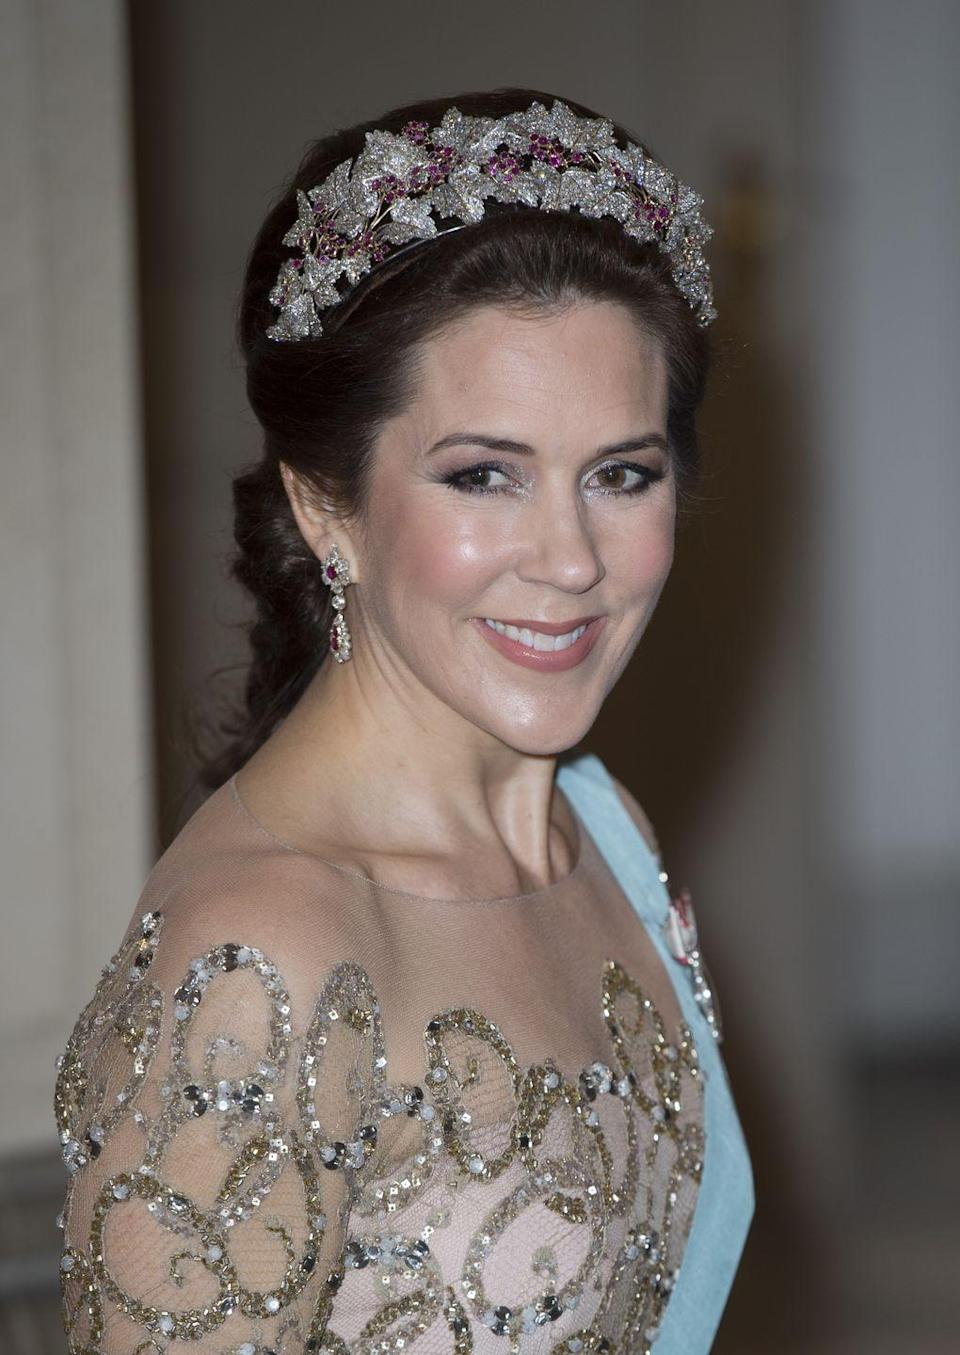 "<p>Nothing says ""princess"" like a ruby-and-diamond-encrusted tiara, especially one that dates back two centuries. According to royal gem-watching blog, <a href=""http://www.thecourtjeweller.com/2016/08/the-danish-ruby-parure-tiara.html"" rel=""nofollow noopener"" target=""_blank"" data-ylk=""slk:The Court Jeweller"" class=""link rapid-noclick-resp"">The Court Jeweller</a>, the gems were first worn by a royal lady close to Napoleon. The jewels made several passes through a few different countries via royal weddings, eventually ending up in Denmark. Wearing the tiara is a nod to the long tradition that connects generations of European royalty. </p>"